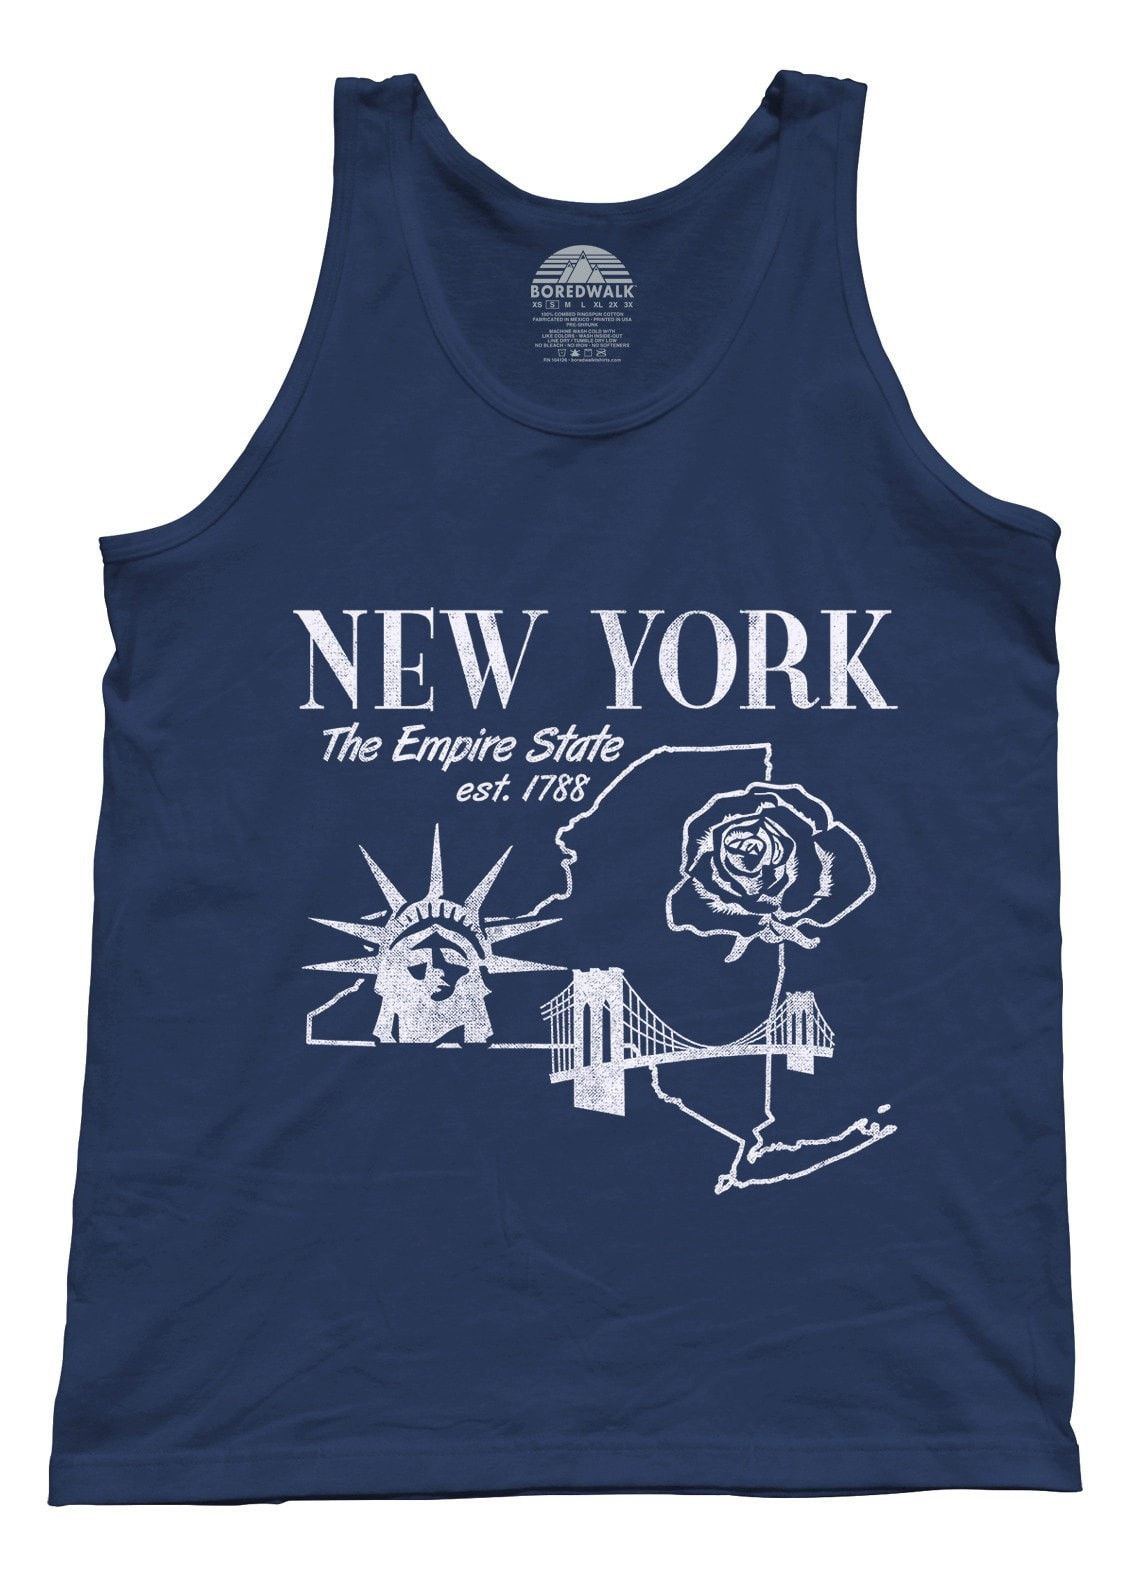 c3b7195ff7502 ... ringspun cotton - hand printed in the USA with eco-friendly water-based  inks - relaxed unisex fit -- perfect for both men and women Our unisex tank  tops ...